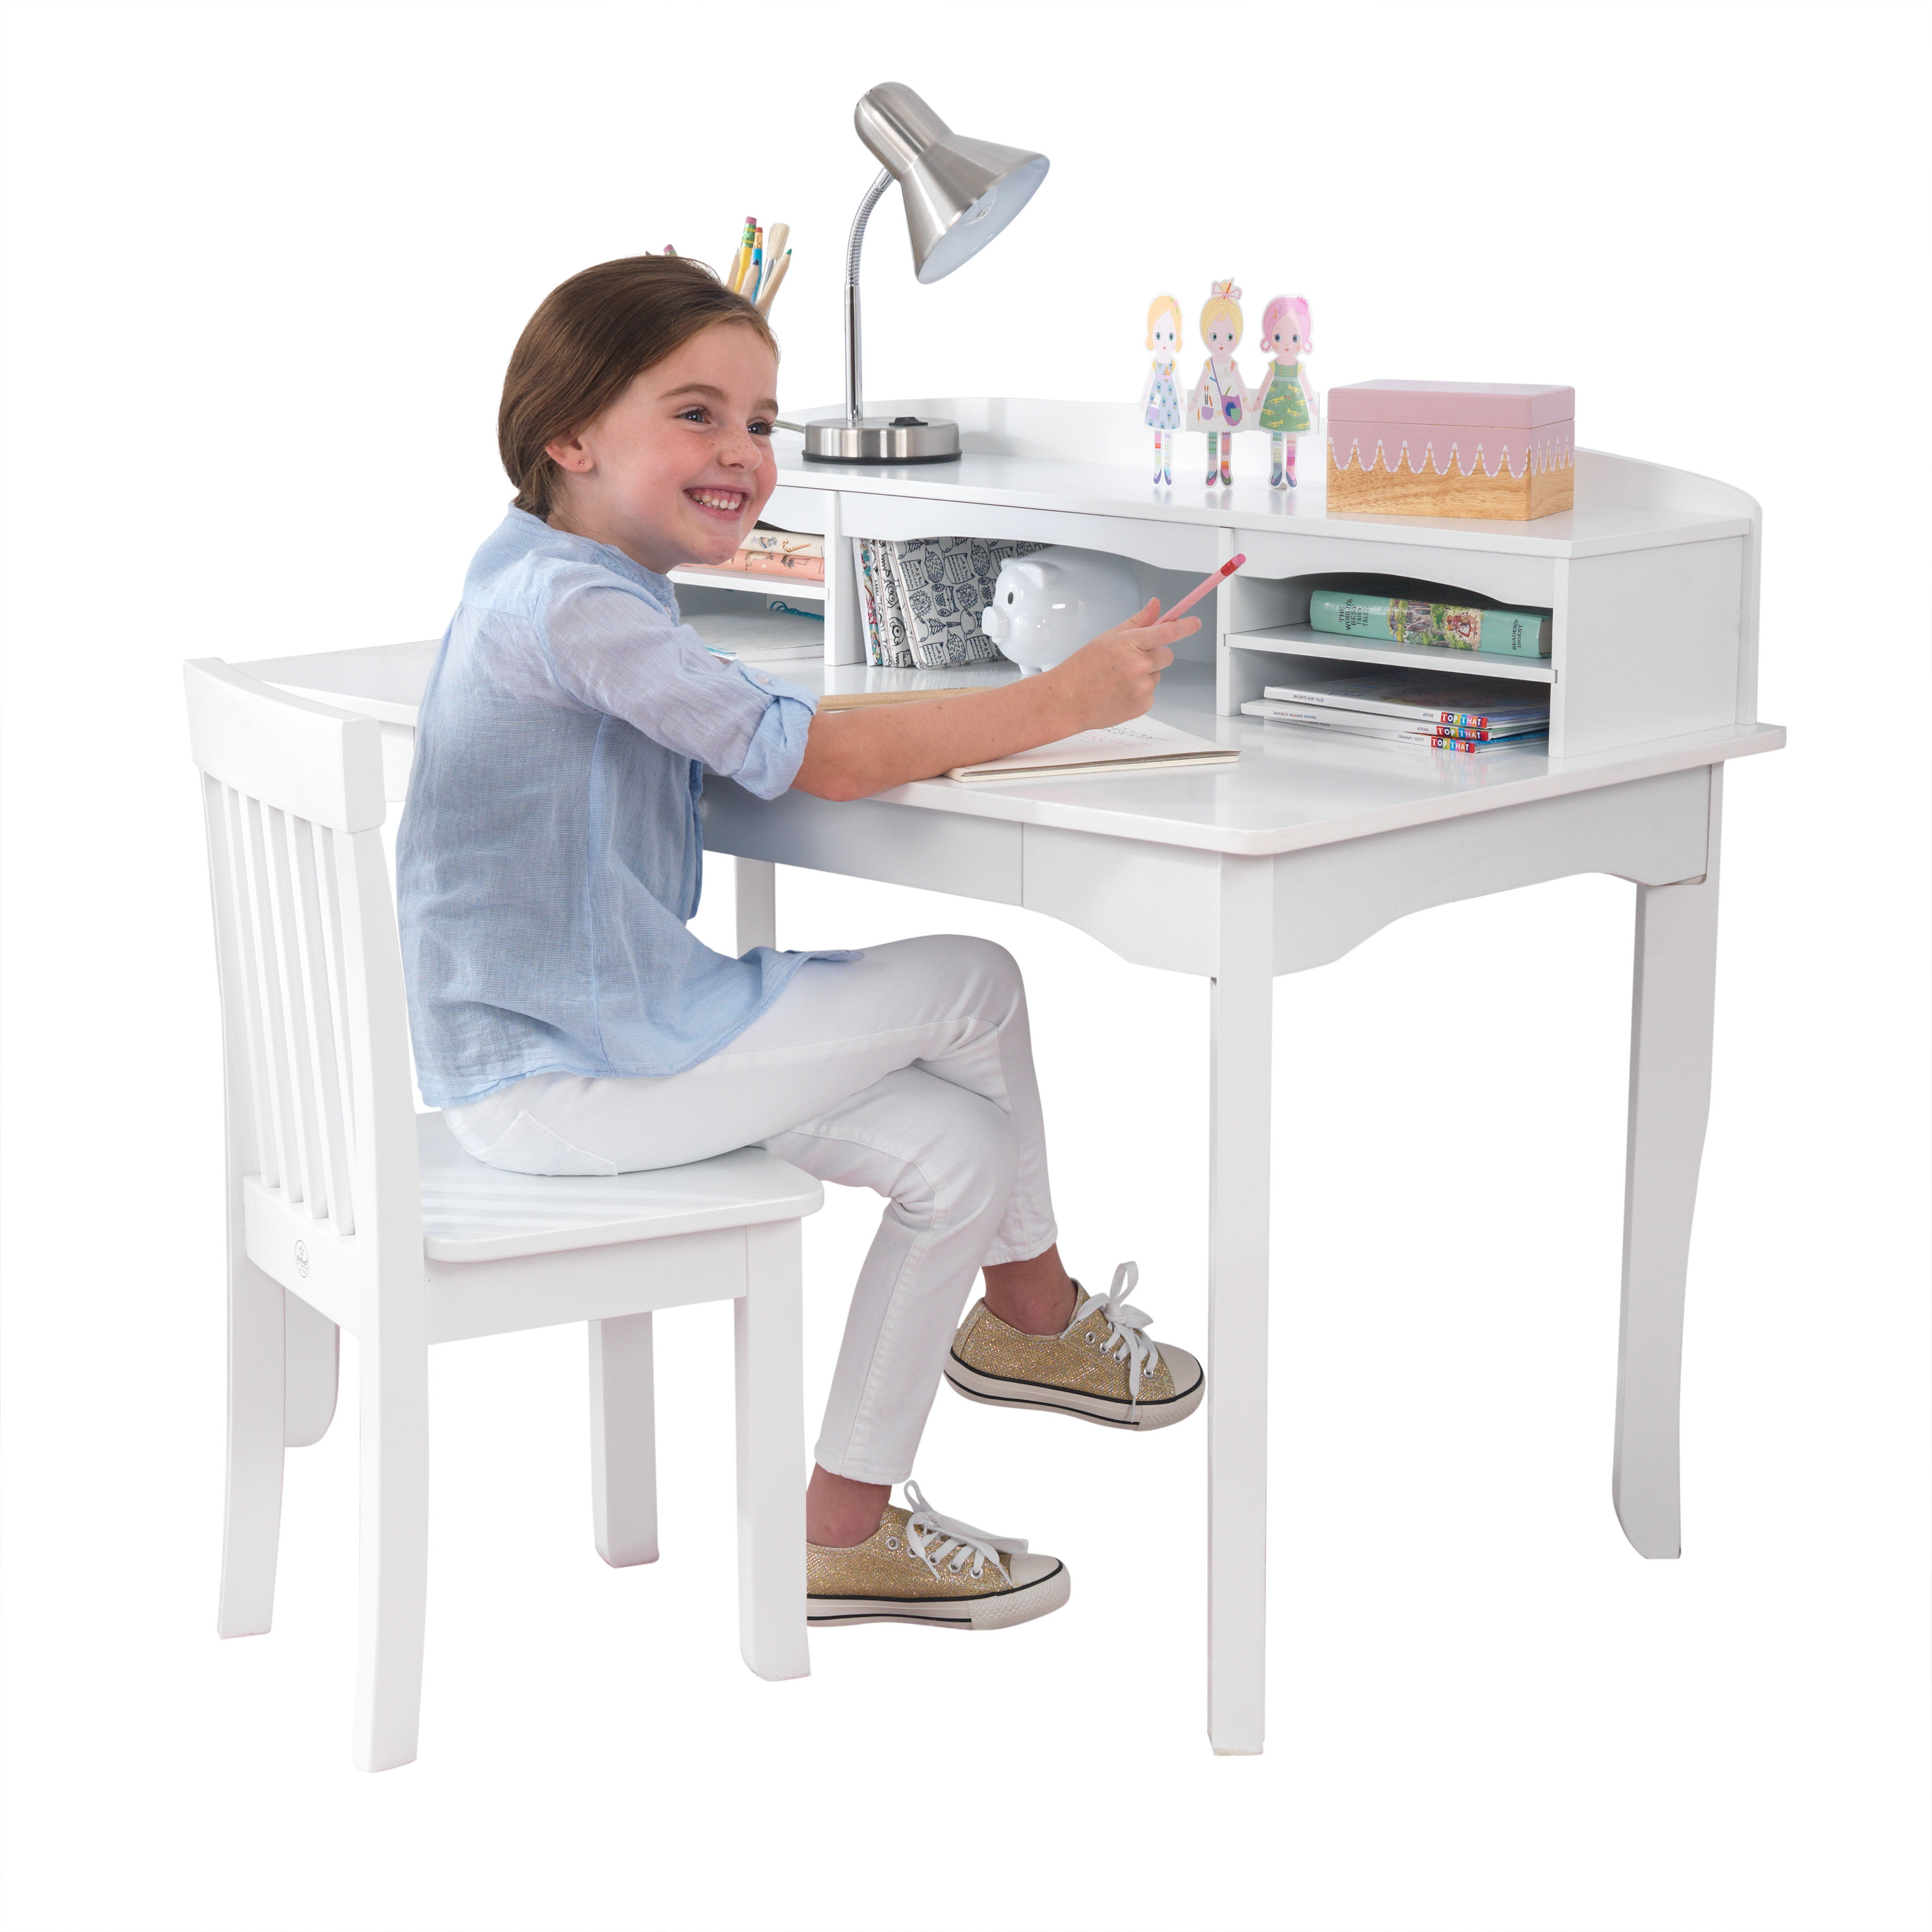 KidKraft Avalon Desk with Hutch and Chair White by KidKraft